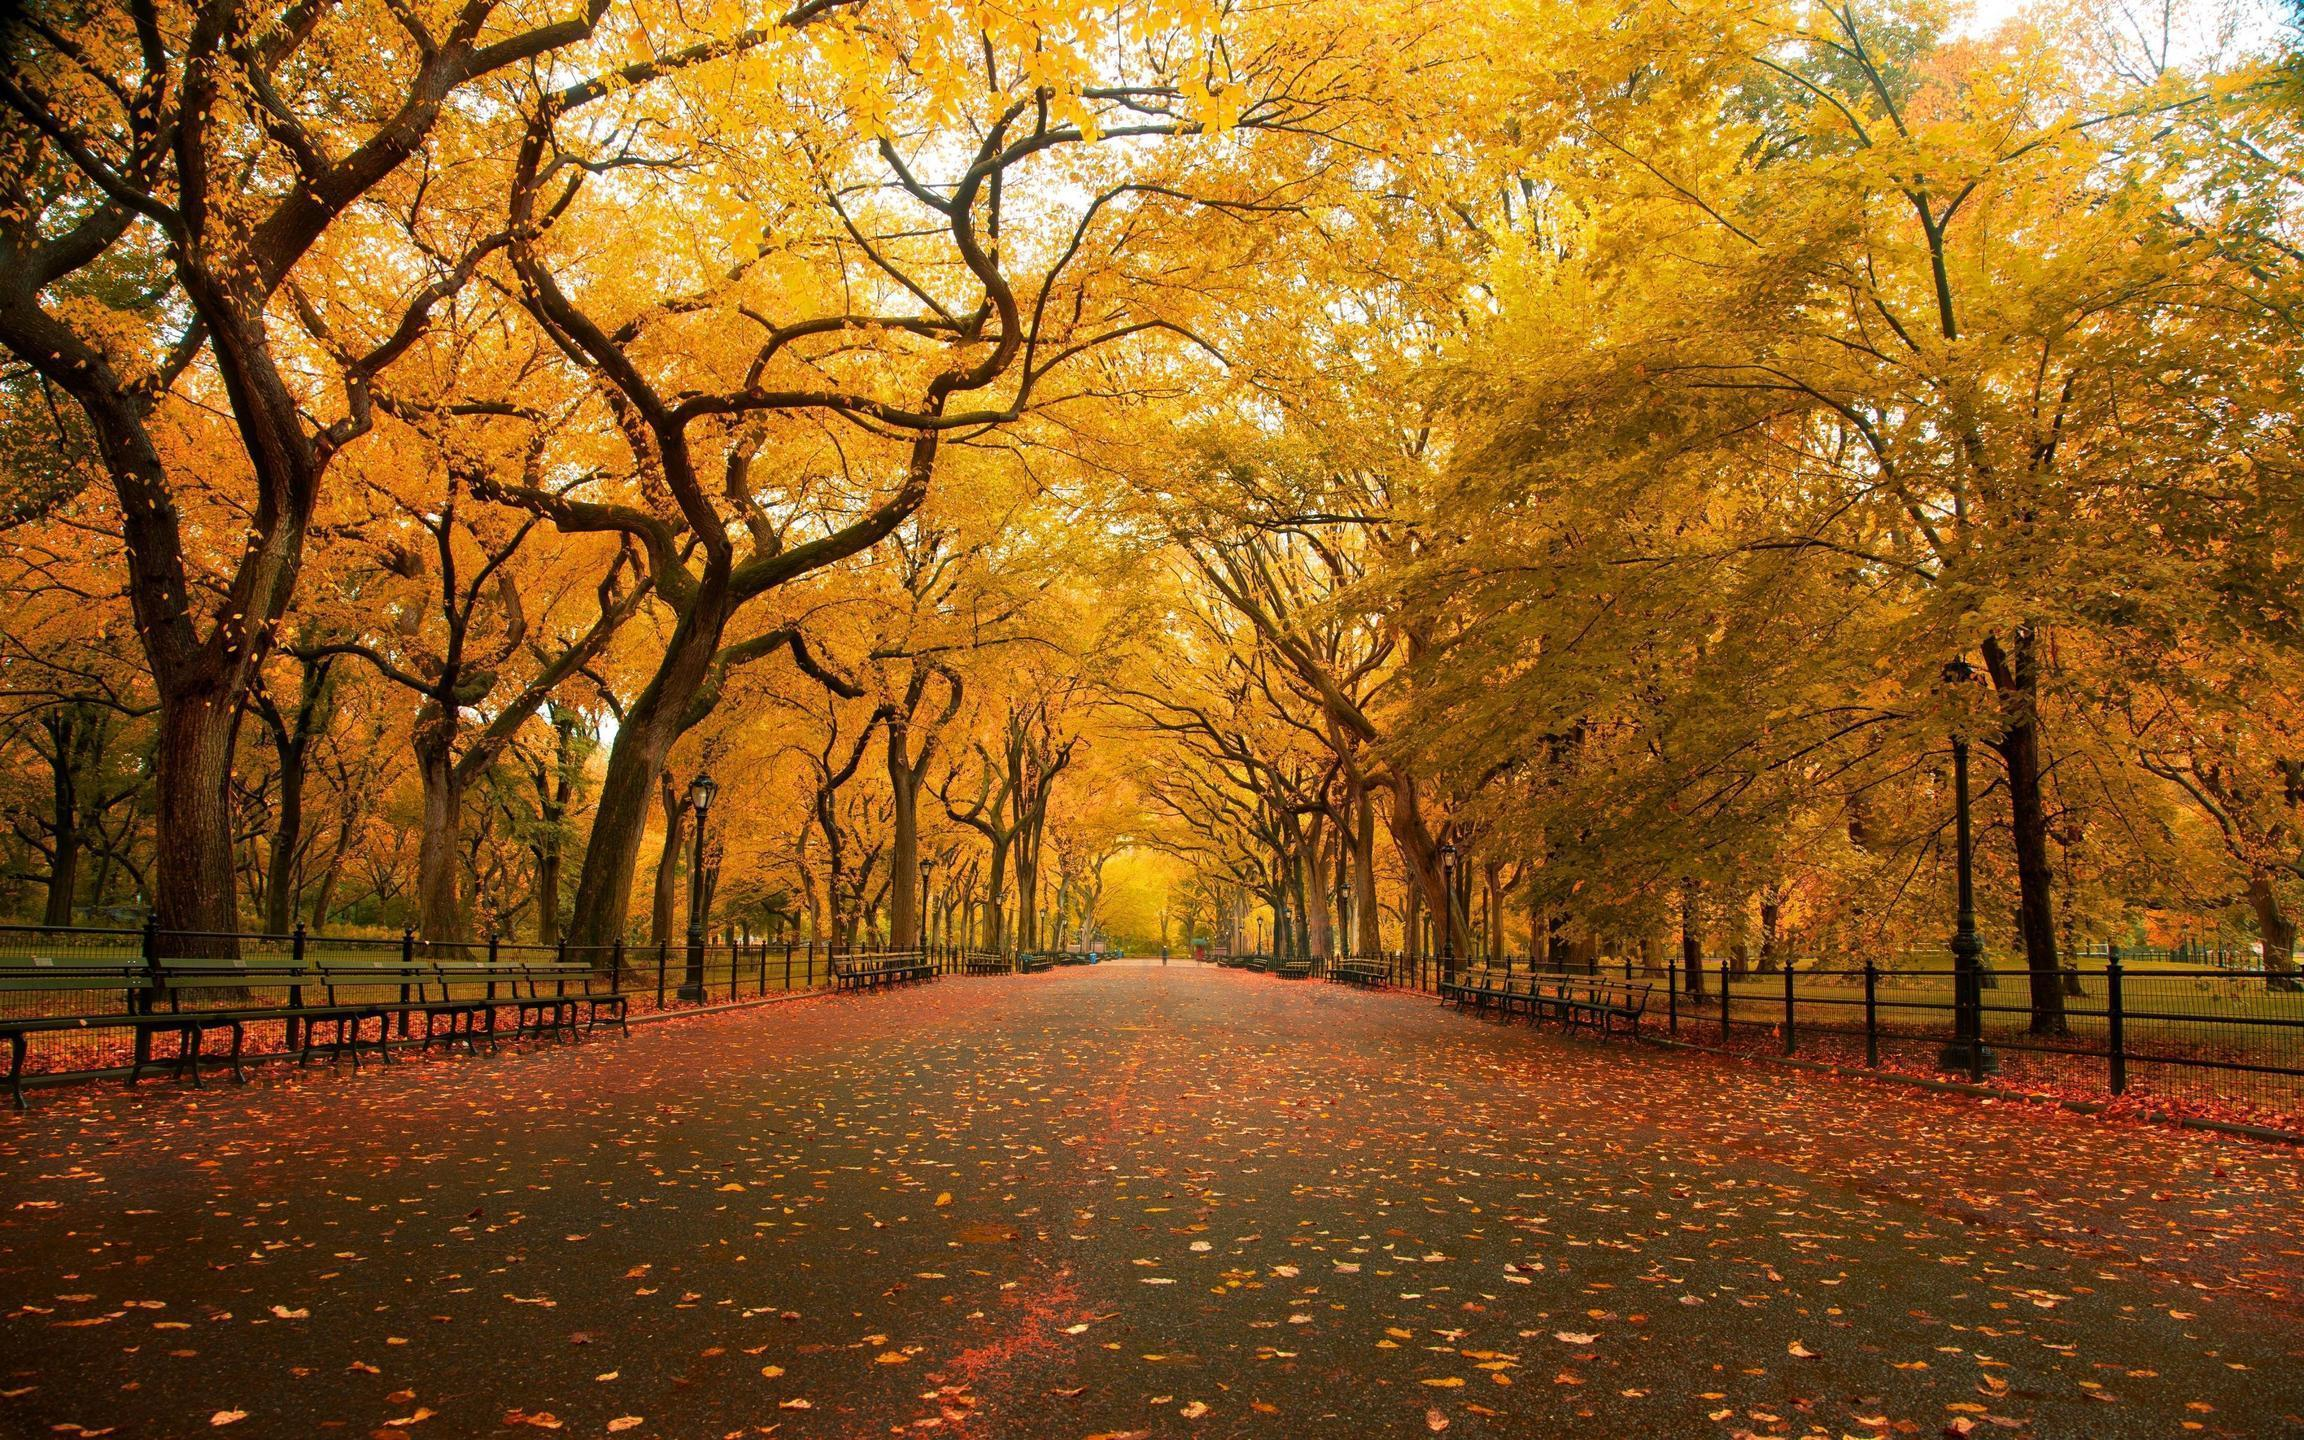 United States, New York, New York City, Central Park in the Fall